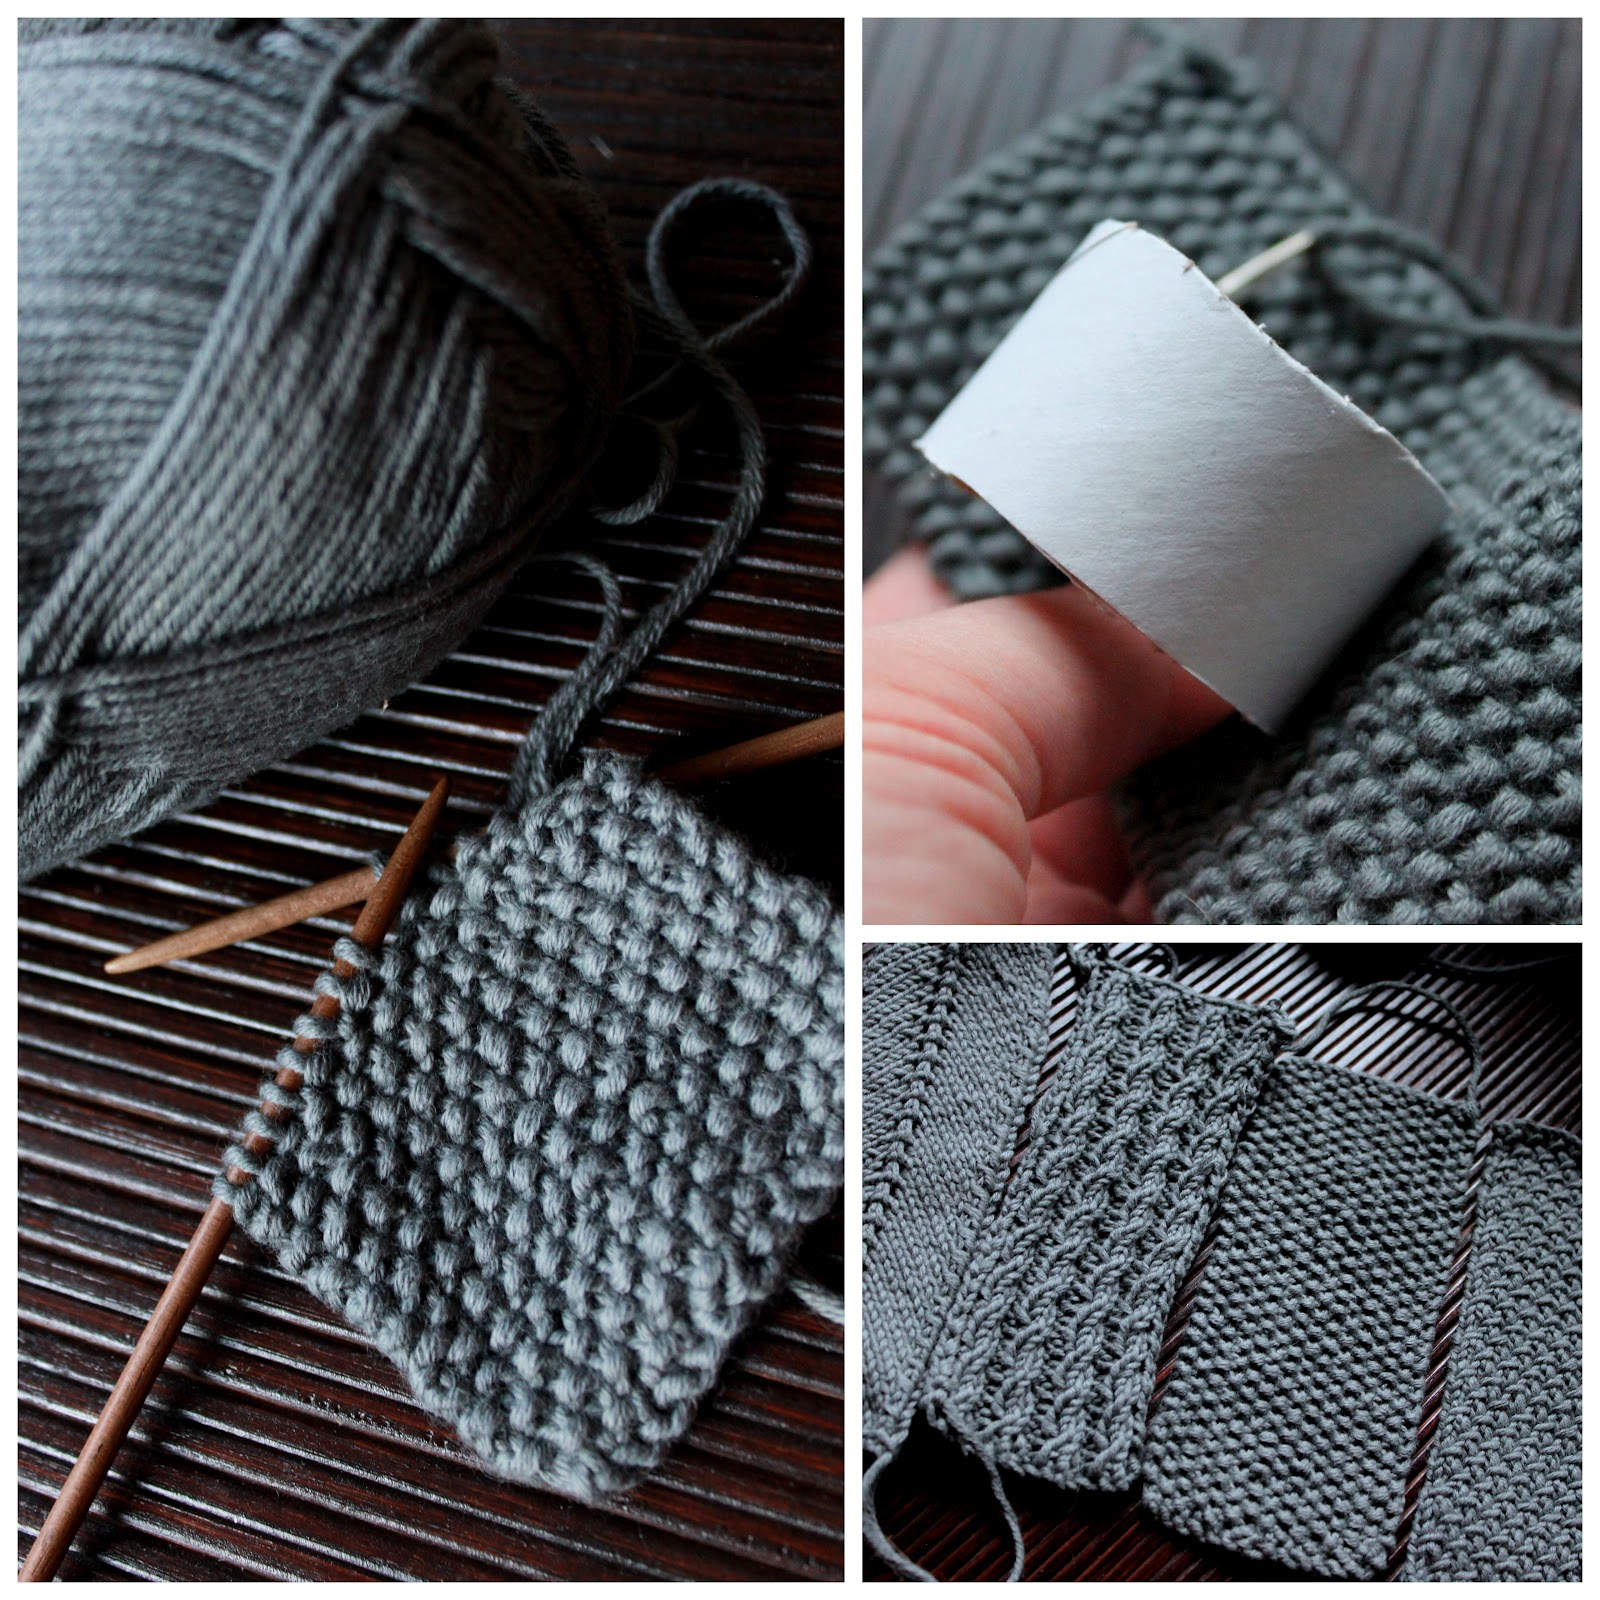 fastgefaehrlich silver cotton portfolio ring web in com plait knitted silber rings en zopfring